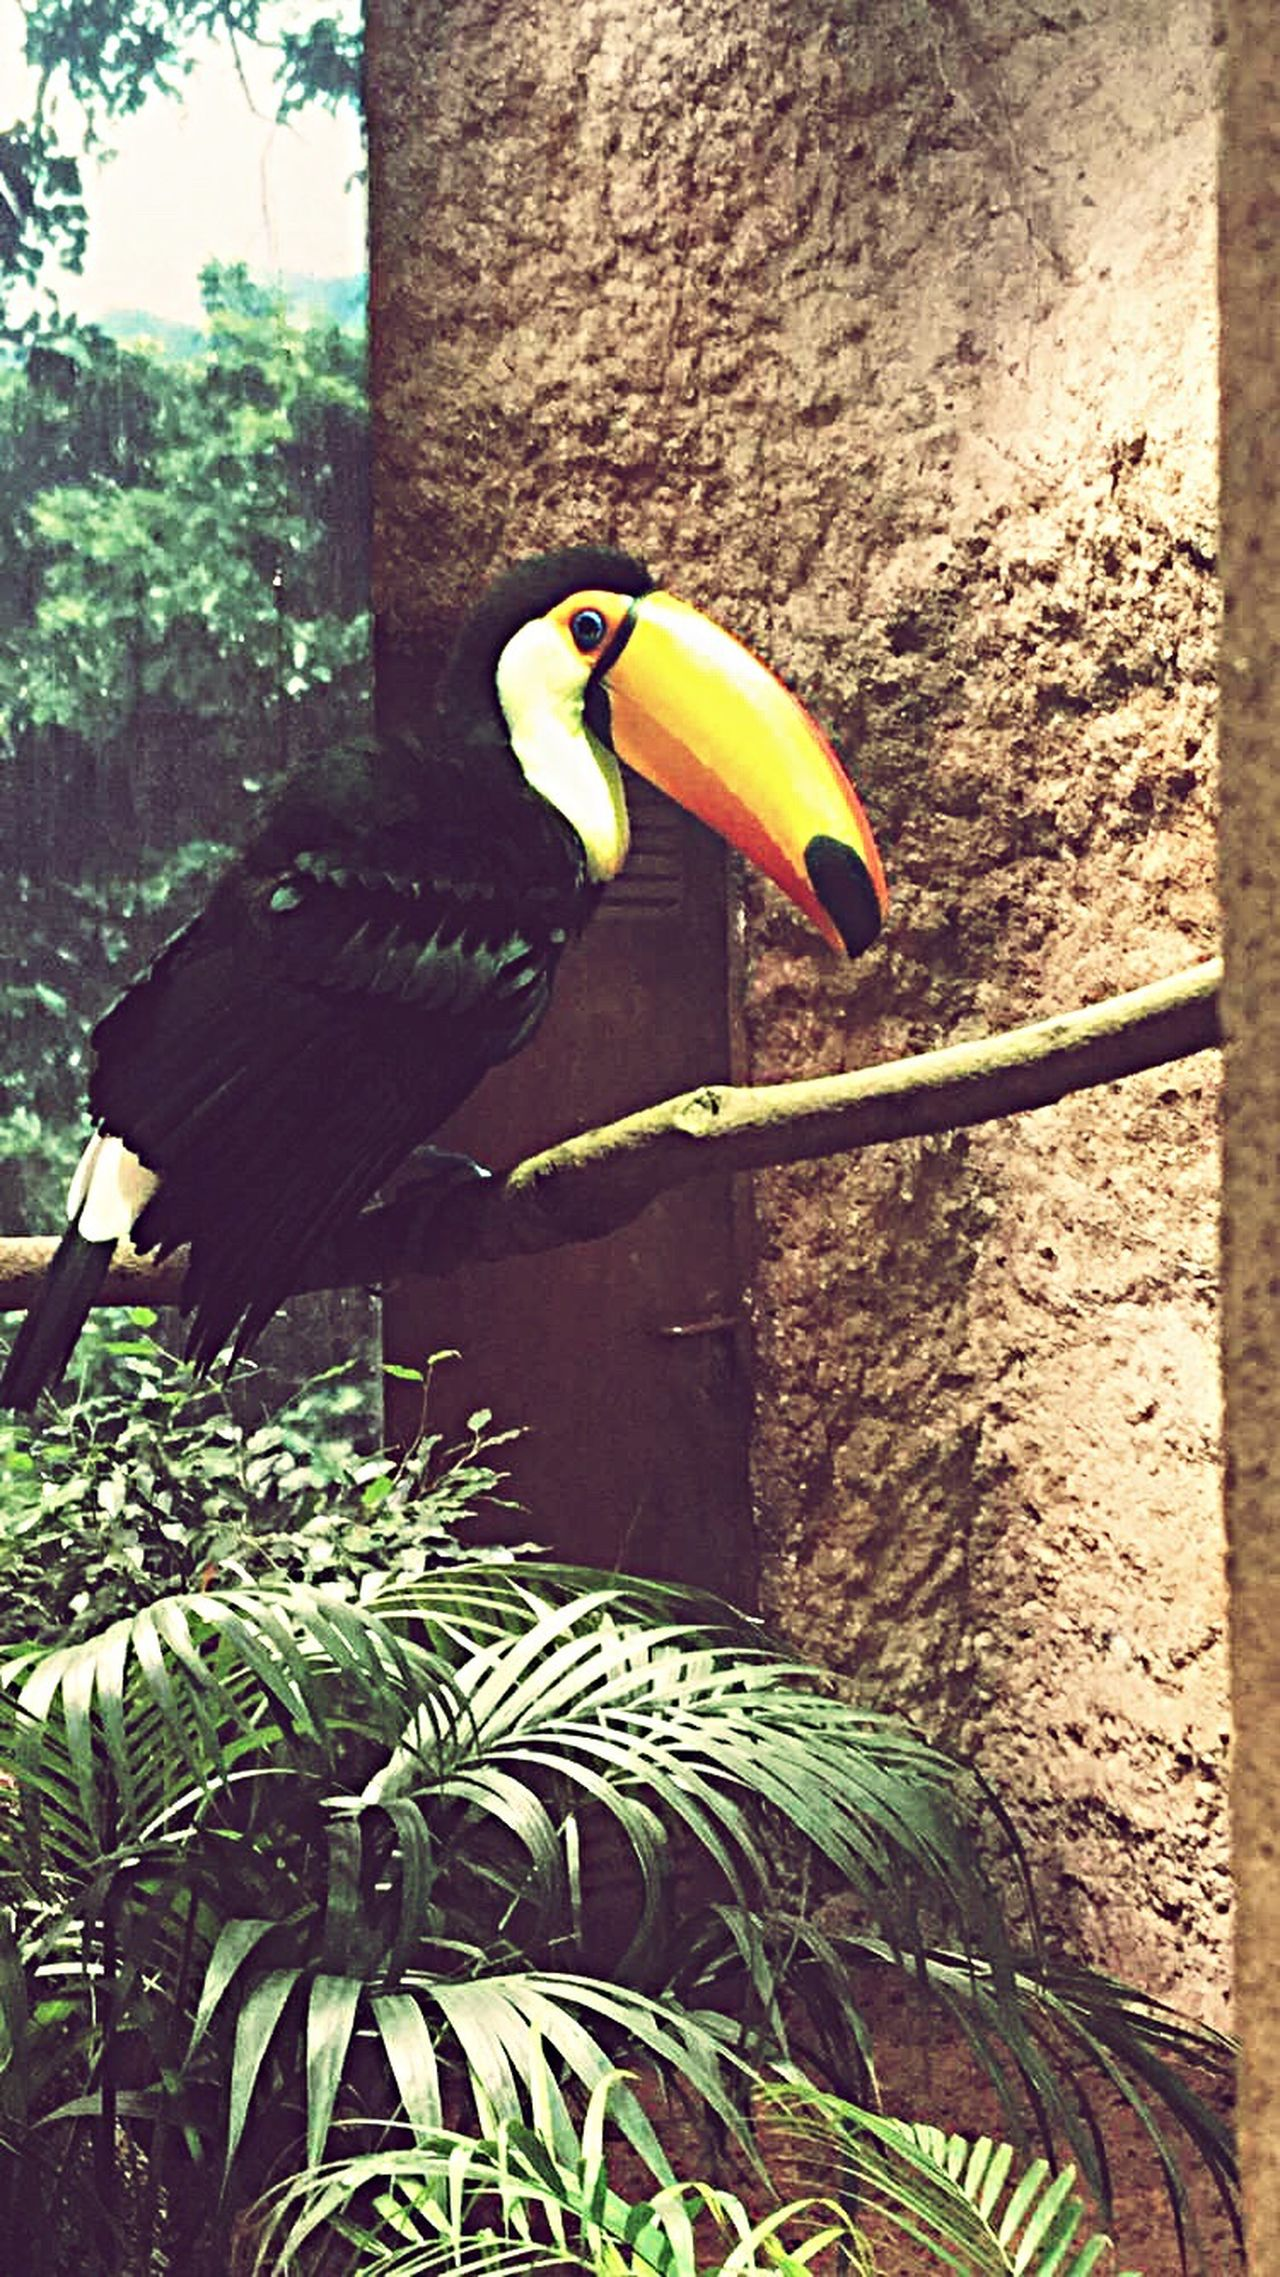 Bird Animal Themes One Animal Animals In The Wild Perching Day Tree Nature Outdoors No People Nature Tucan Forest